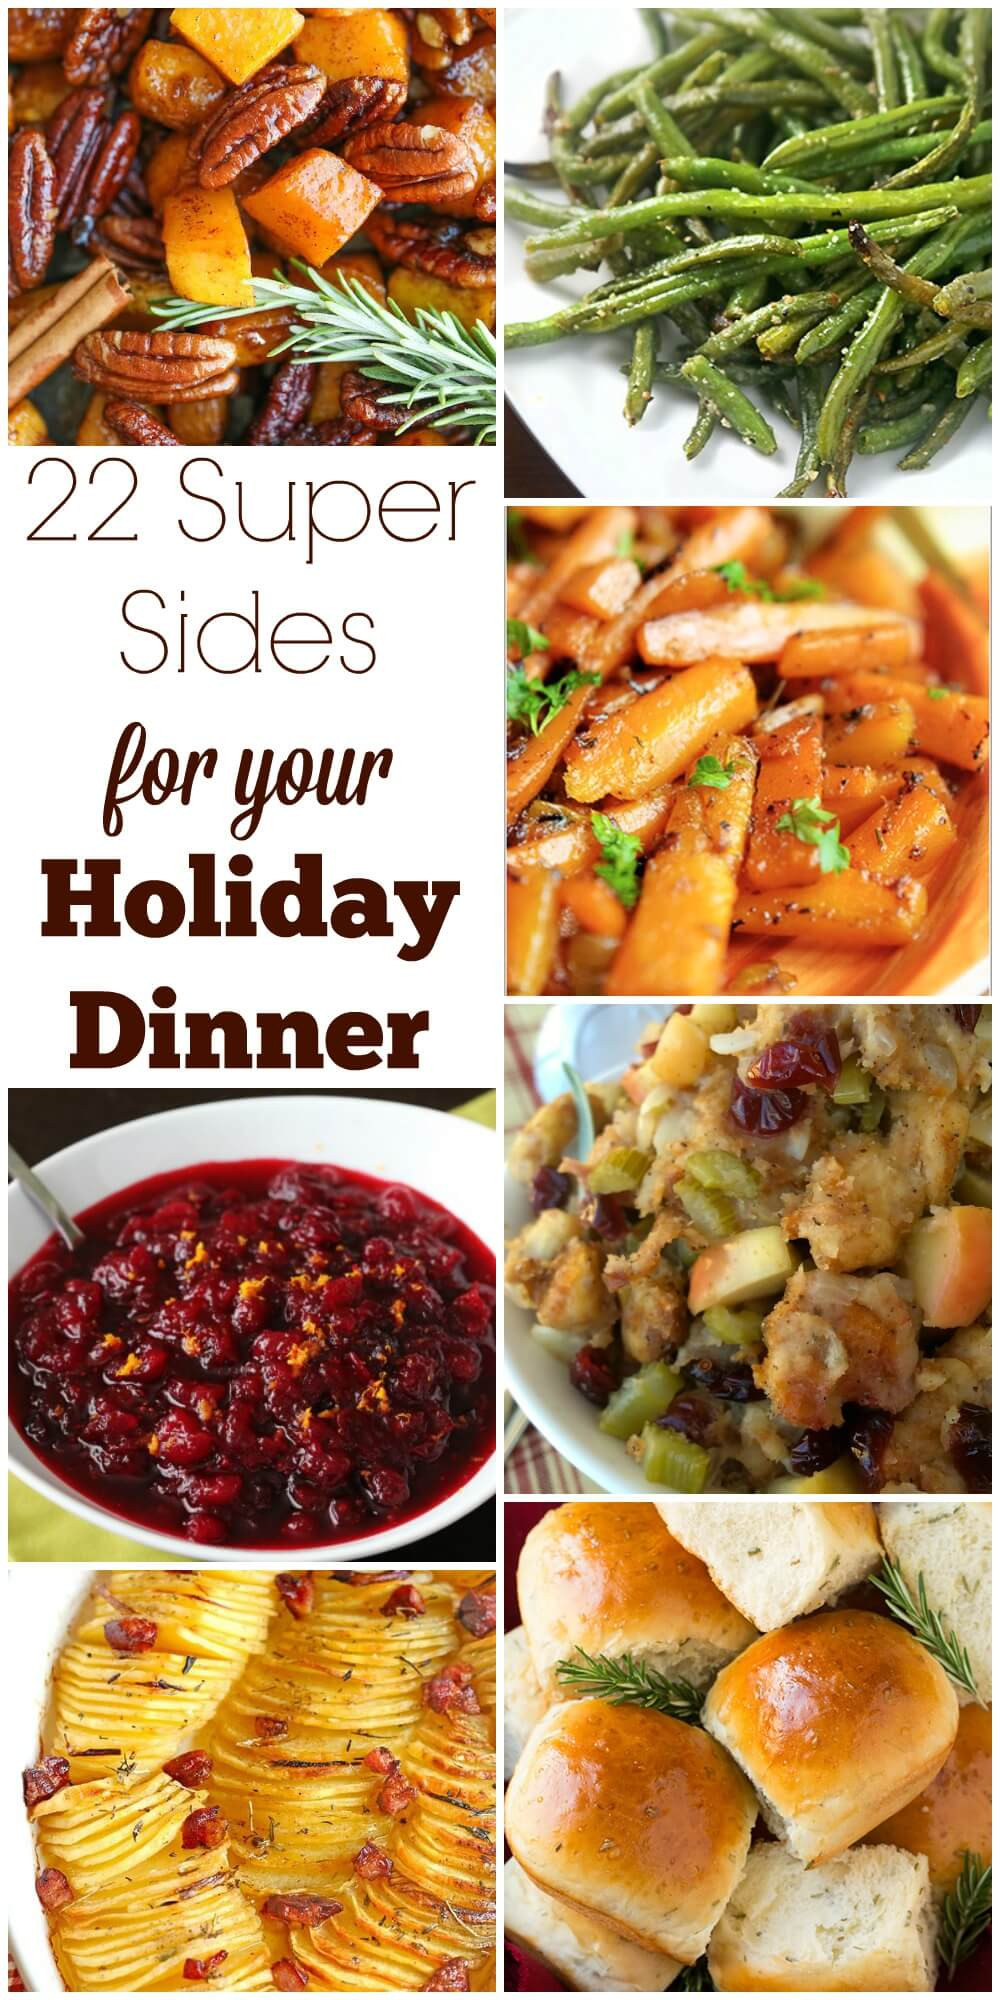 Food For Christmas Dinner  22 Super Sides for Your Holiday Dinner